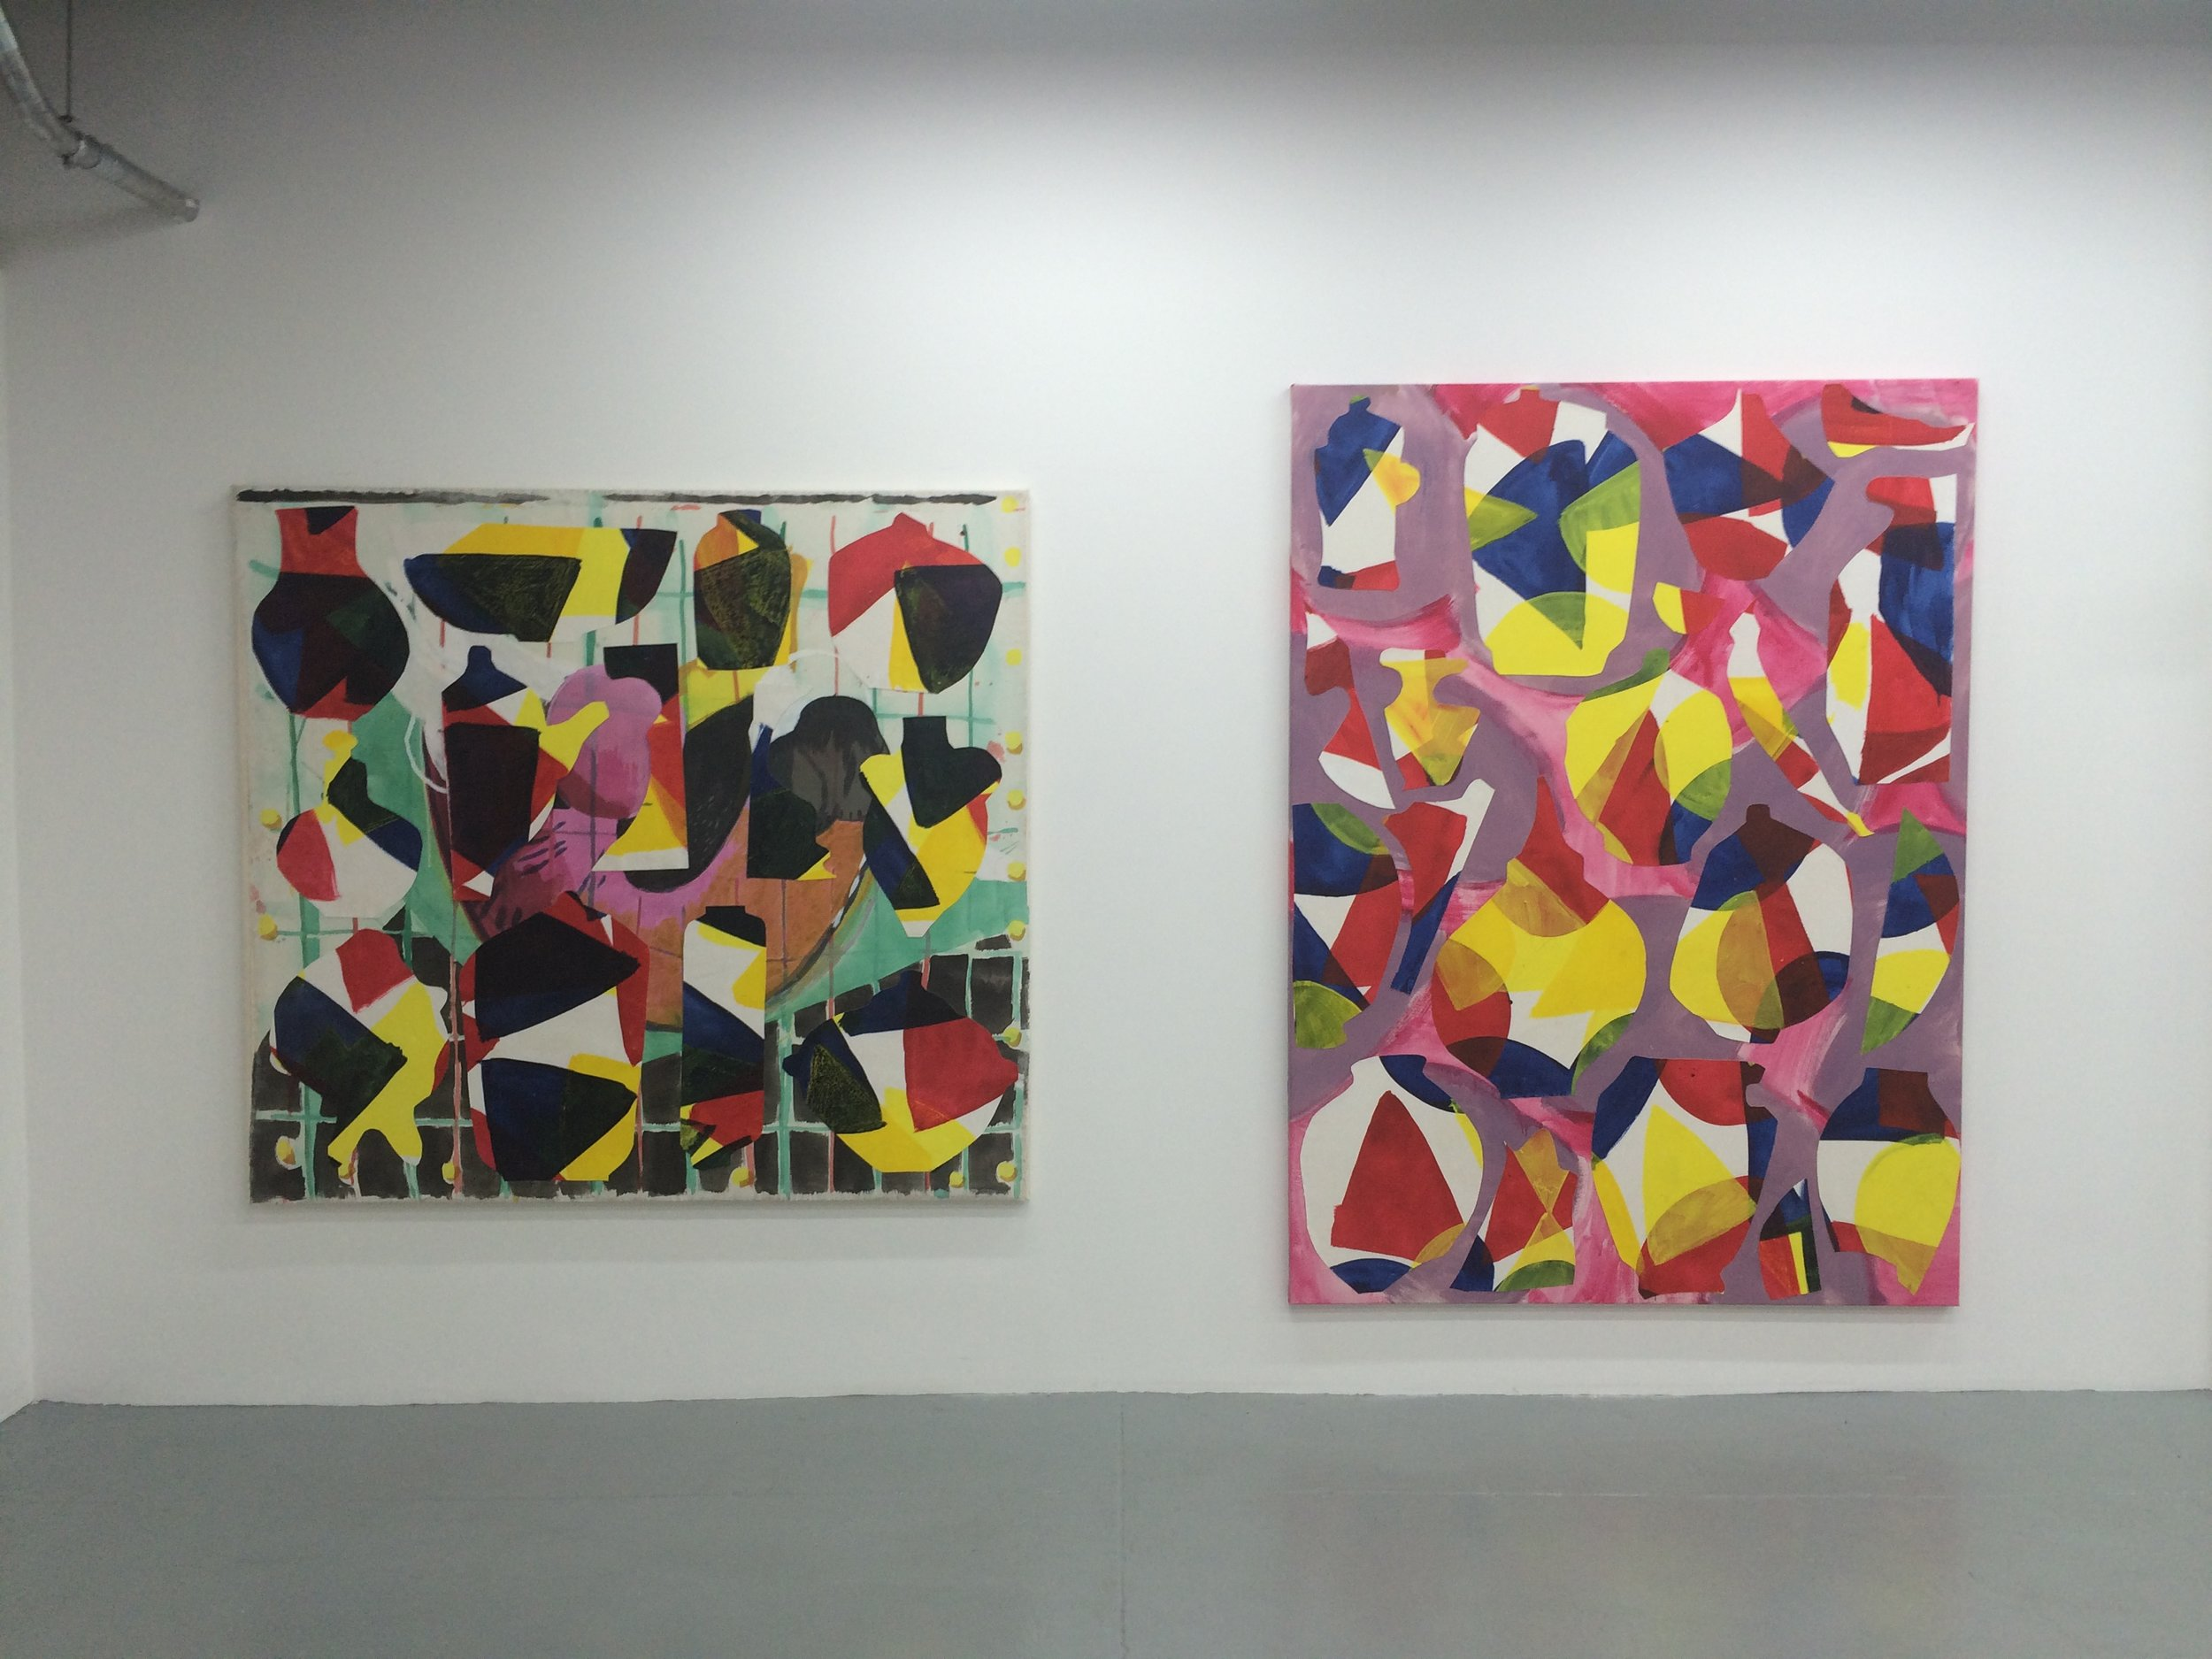 Installation View, To Put on the Edge, A Table, Albertz Benda Gallery, NYC